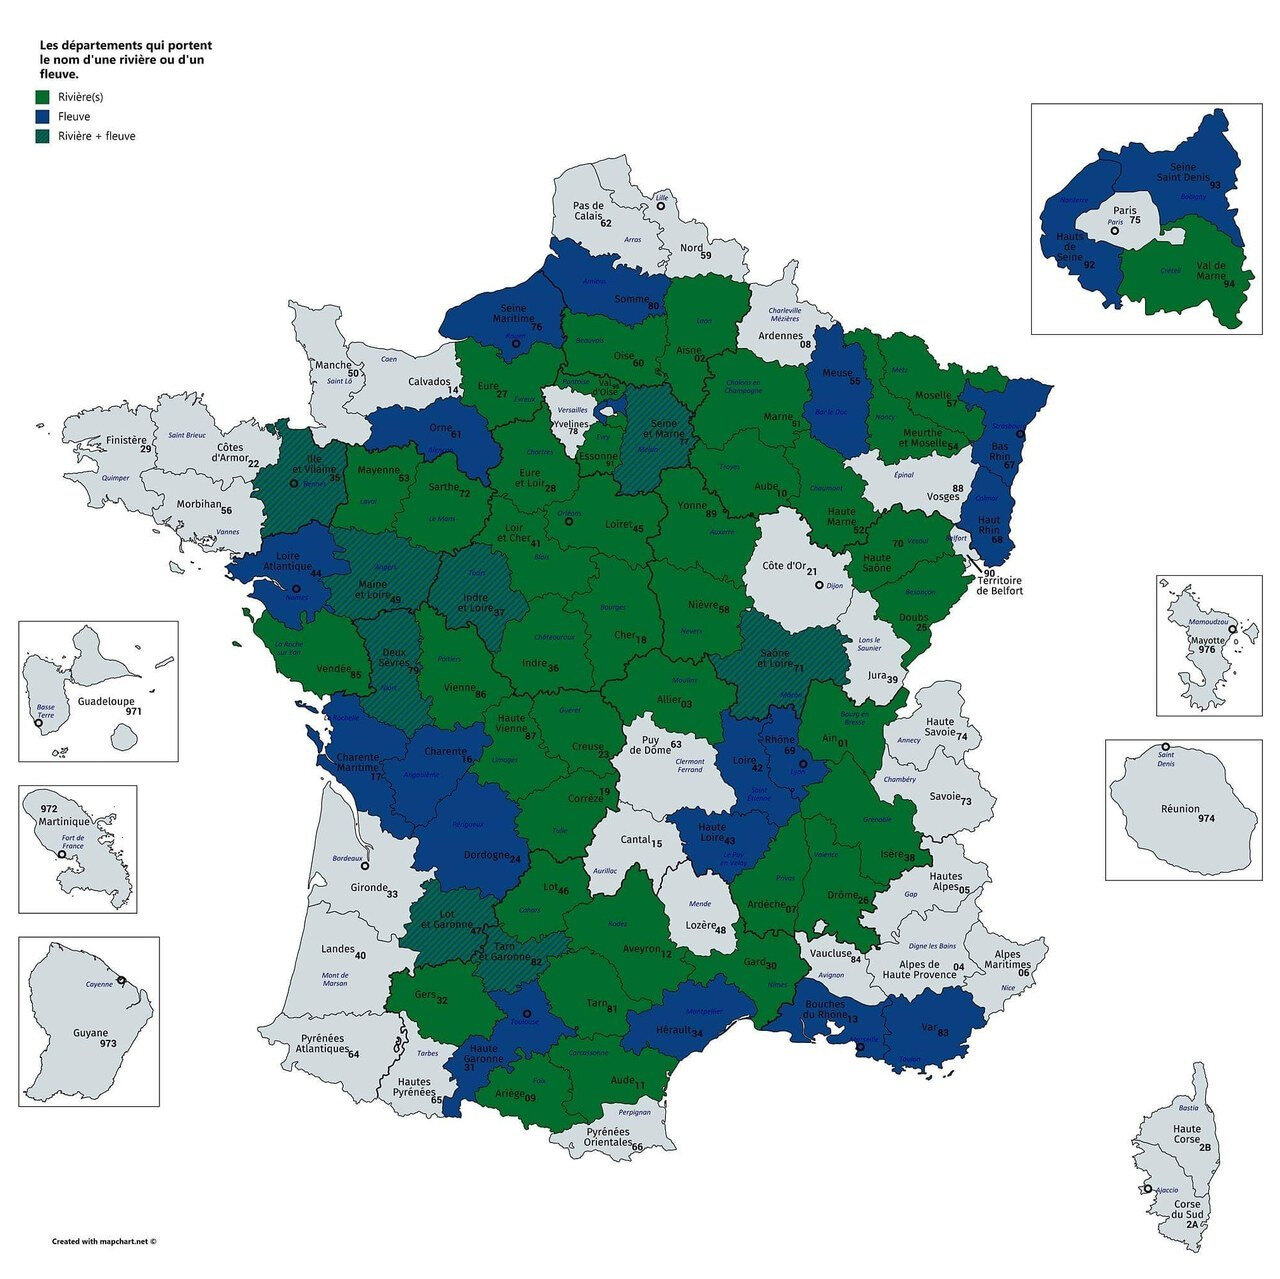 Départements of France that are named after rivers